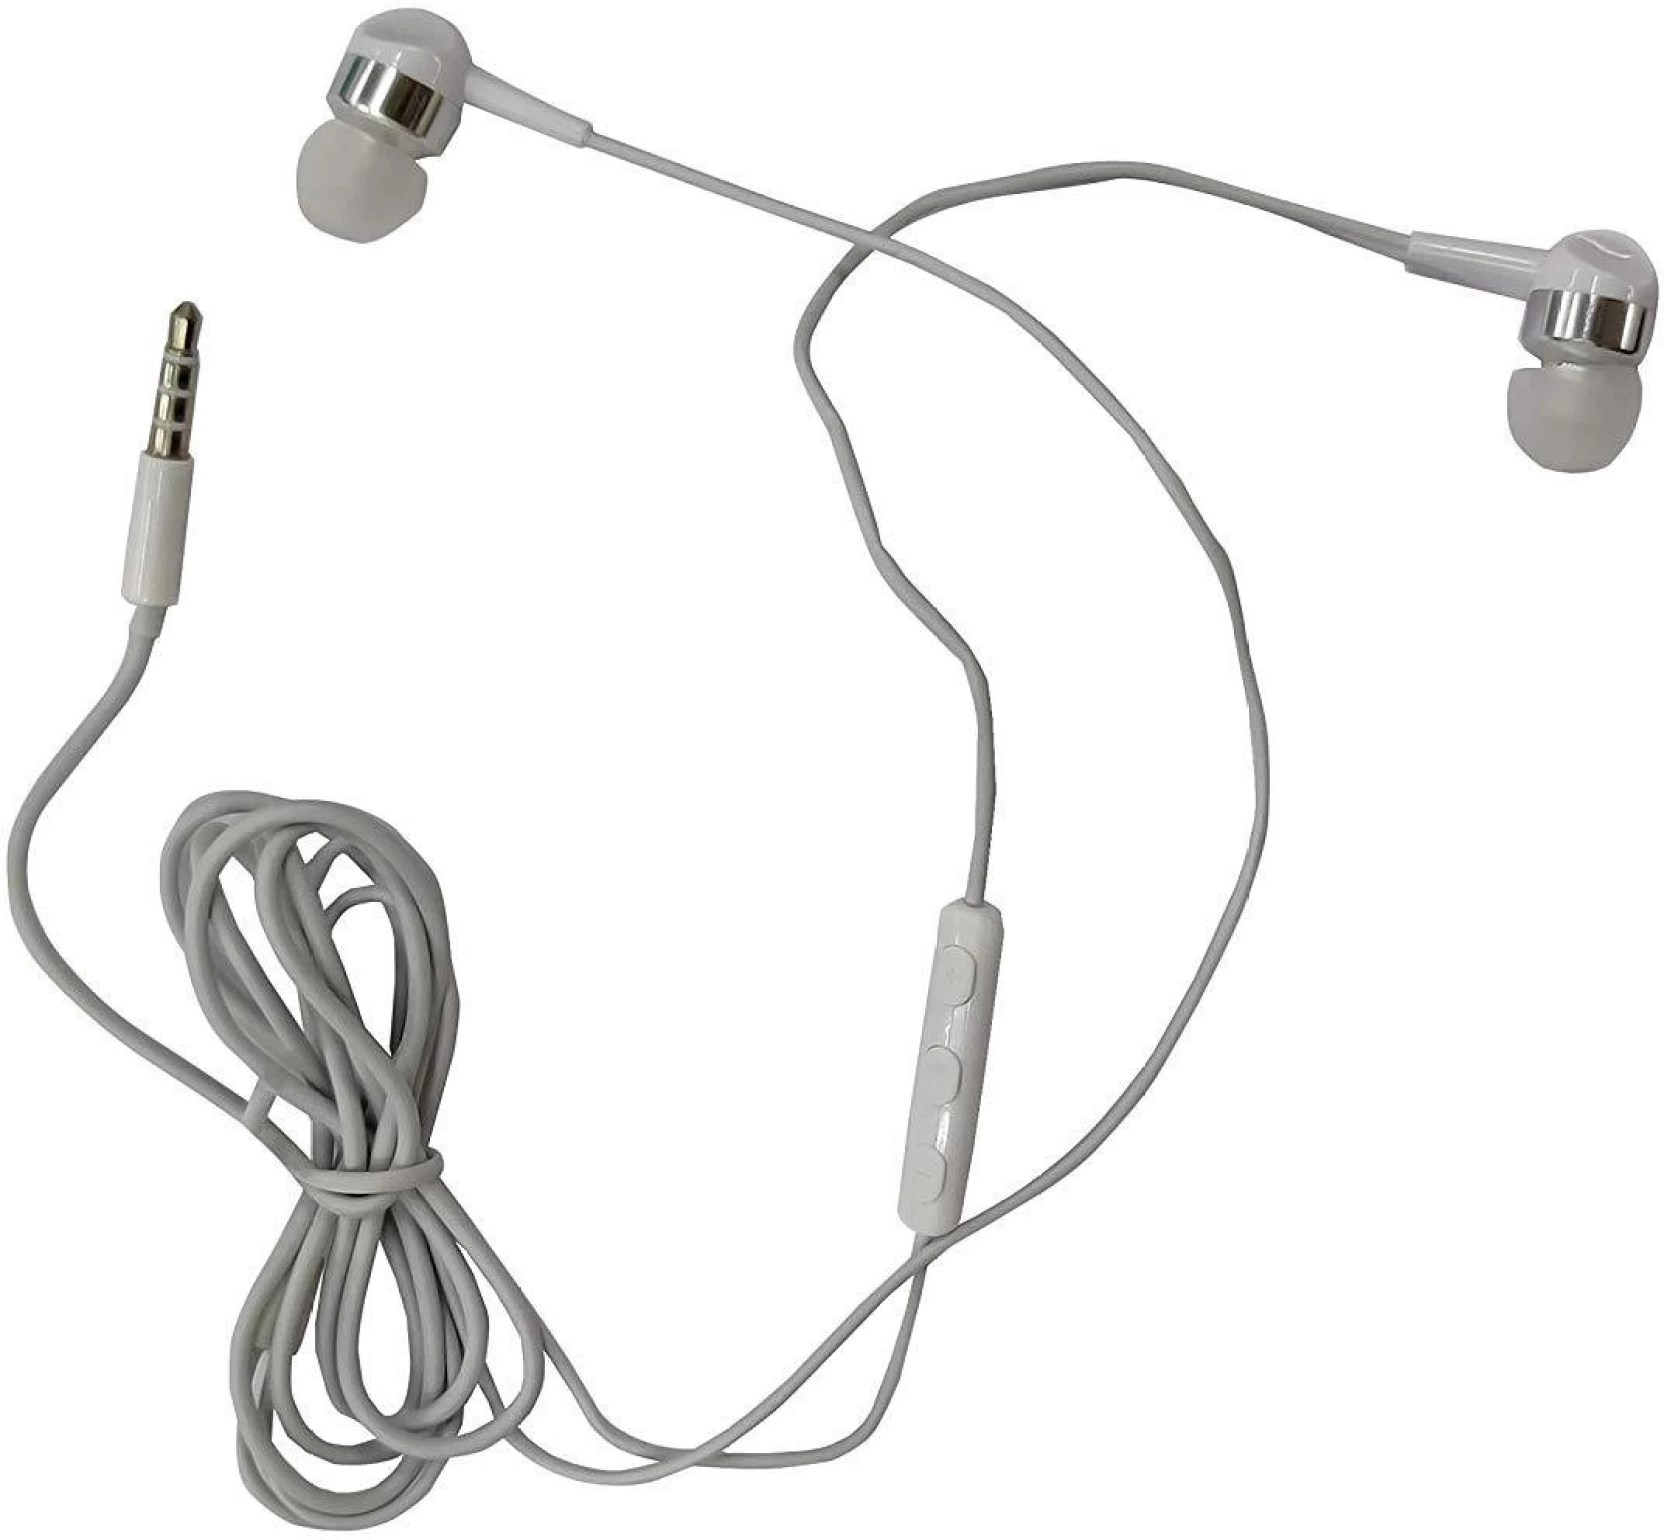 small resolution of pacificdeals 3 5mm earphone for asus zenfone 4 zenfone 5 zenfone 6 black wired headset with mic white in the ear